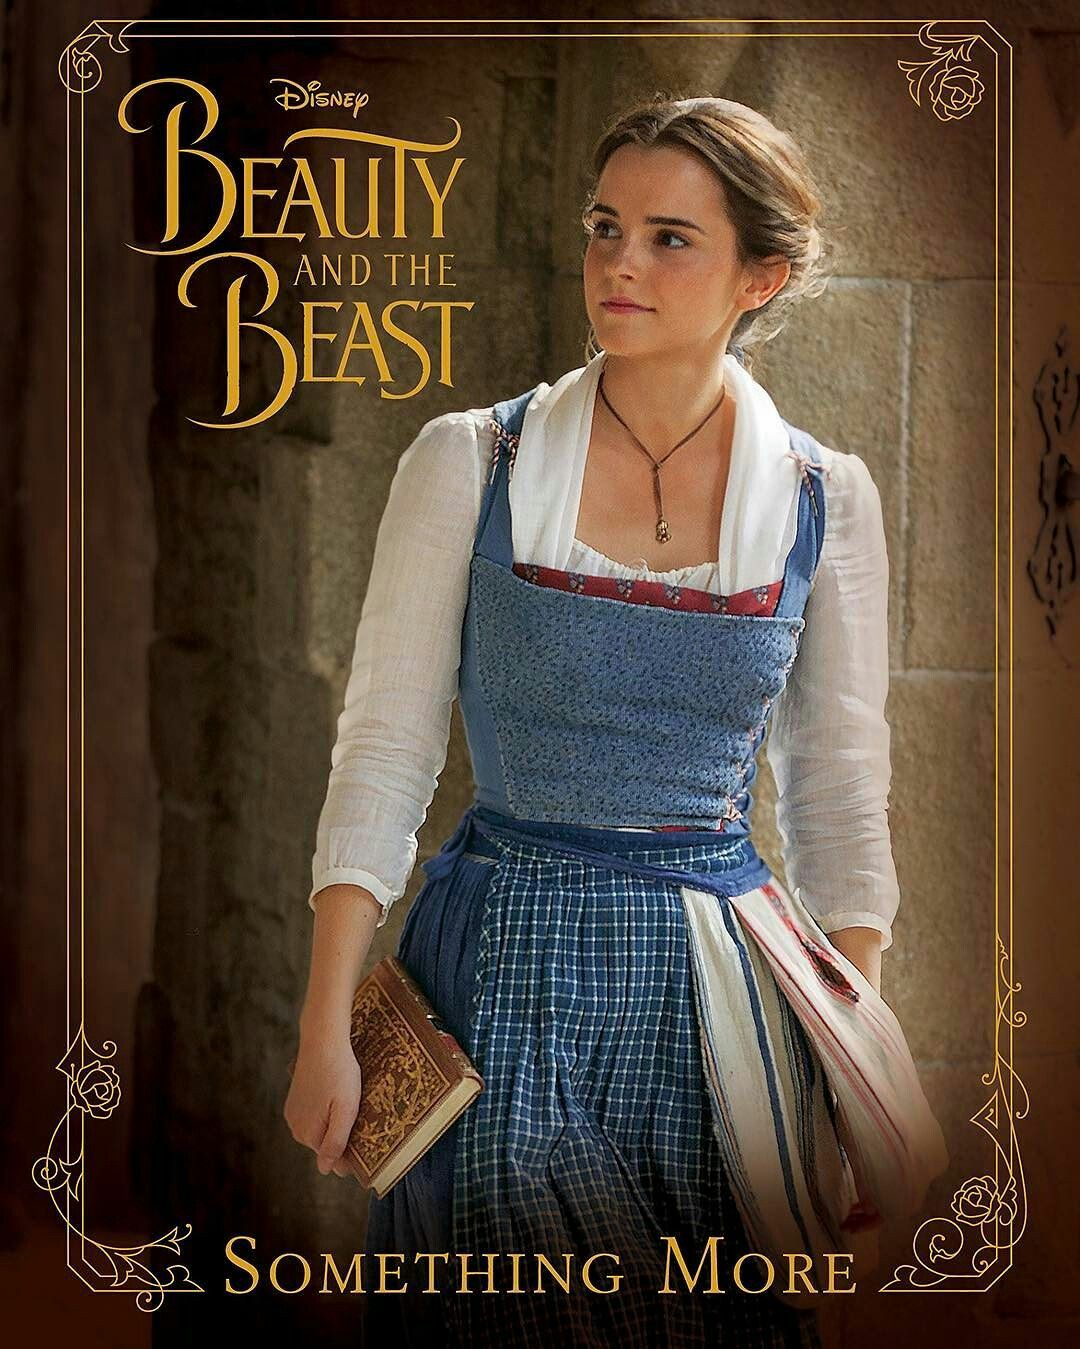 Emma Watson As Belle In Disneys Live Action Beauty And The Beast